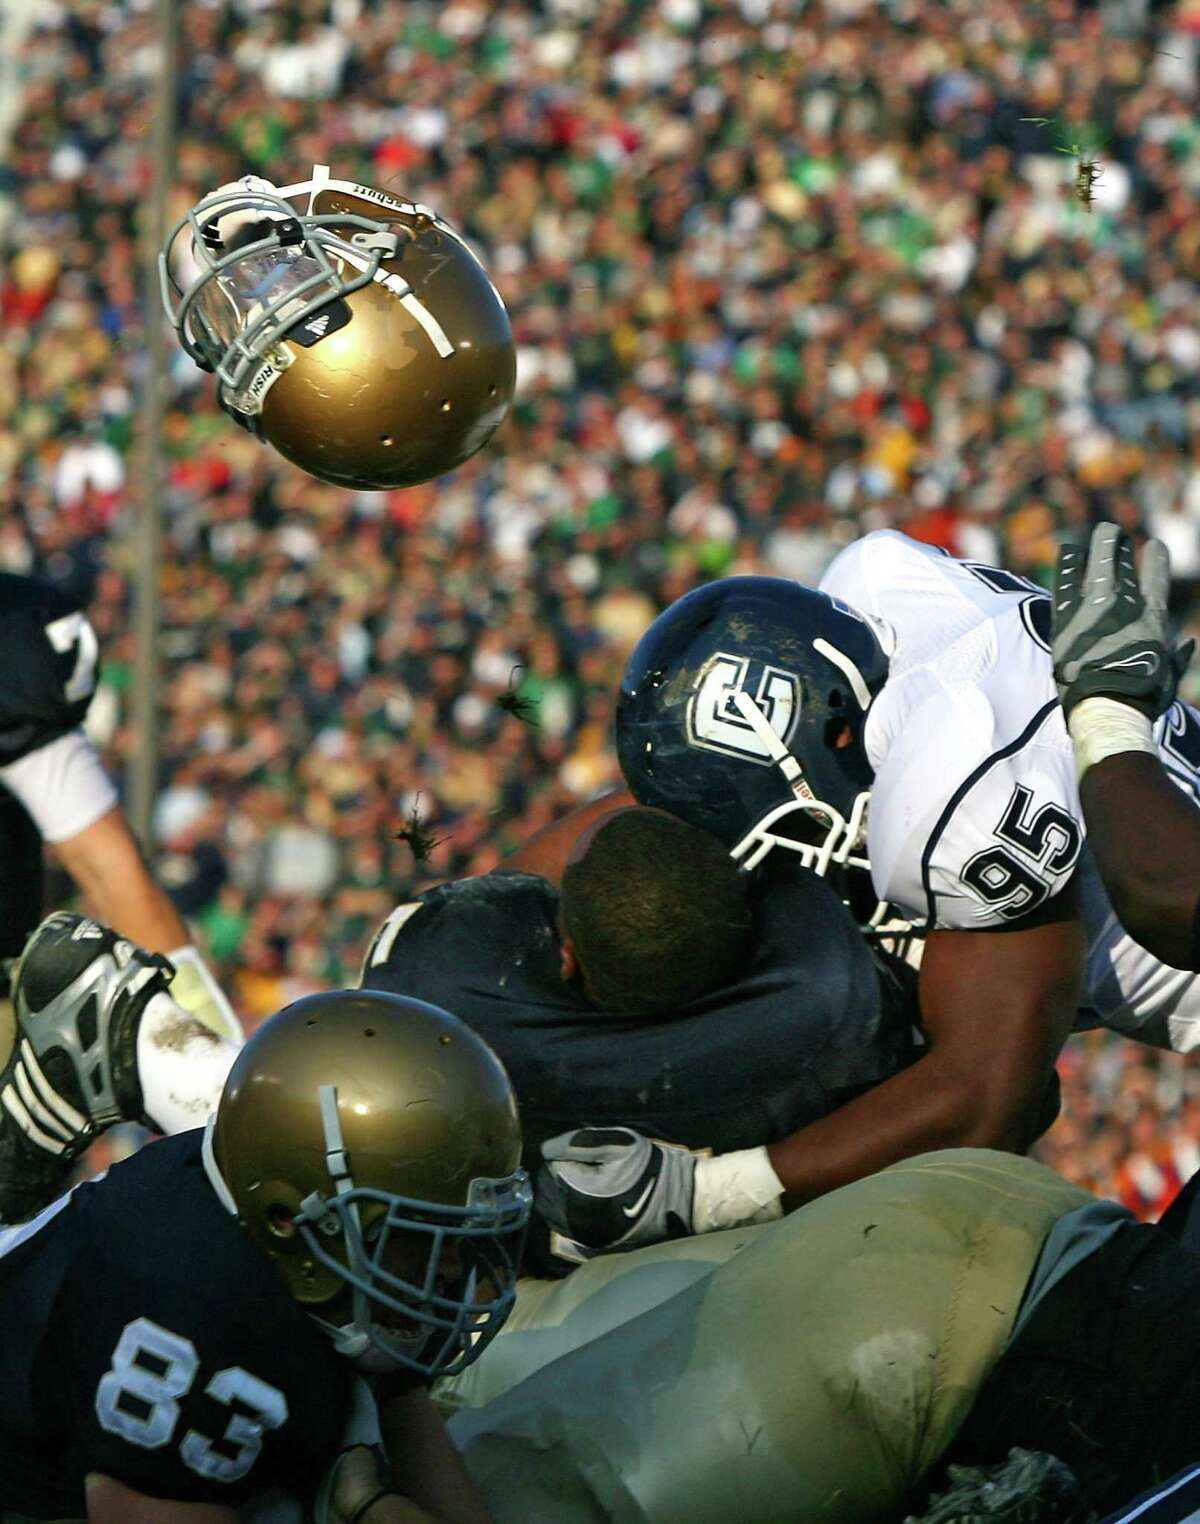 Notre Dame's Armando Allen loses his helmet as he is hit at the goal line by UConn's Greg Lloyd in 2009.